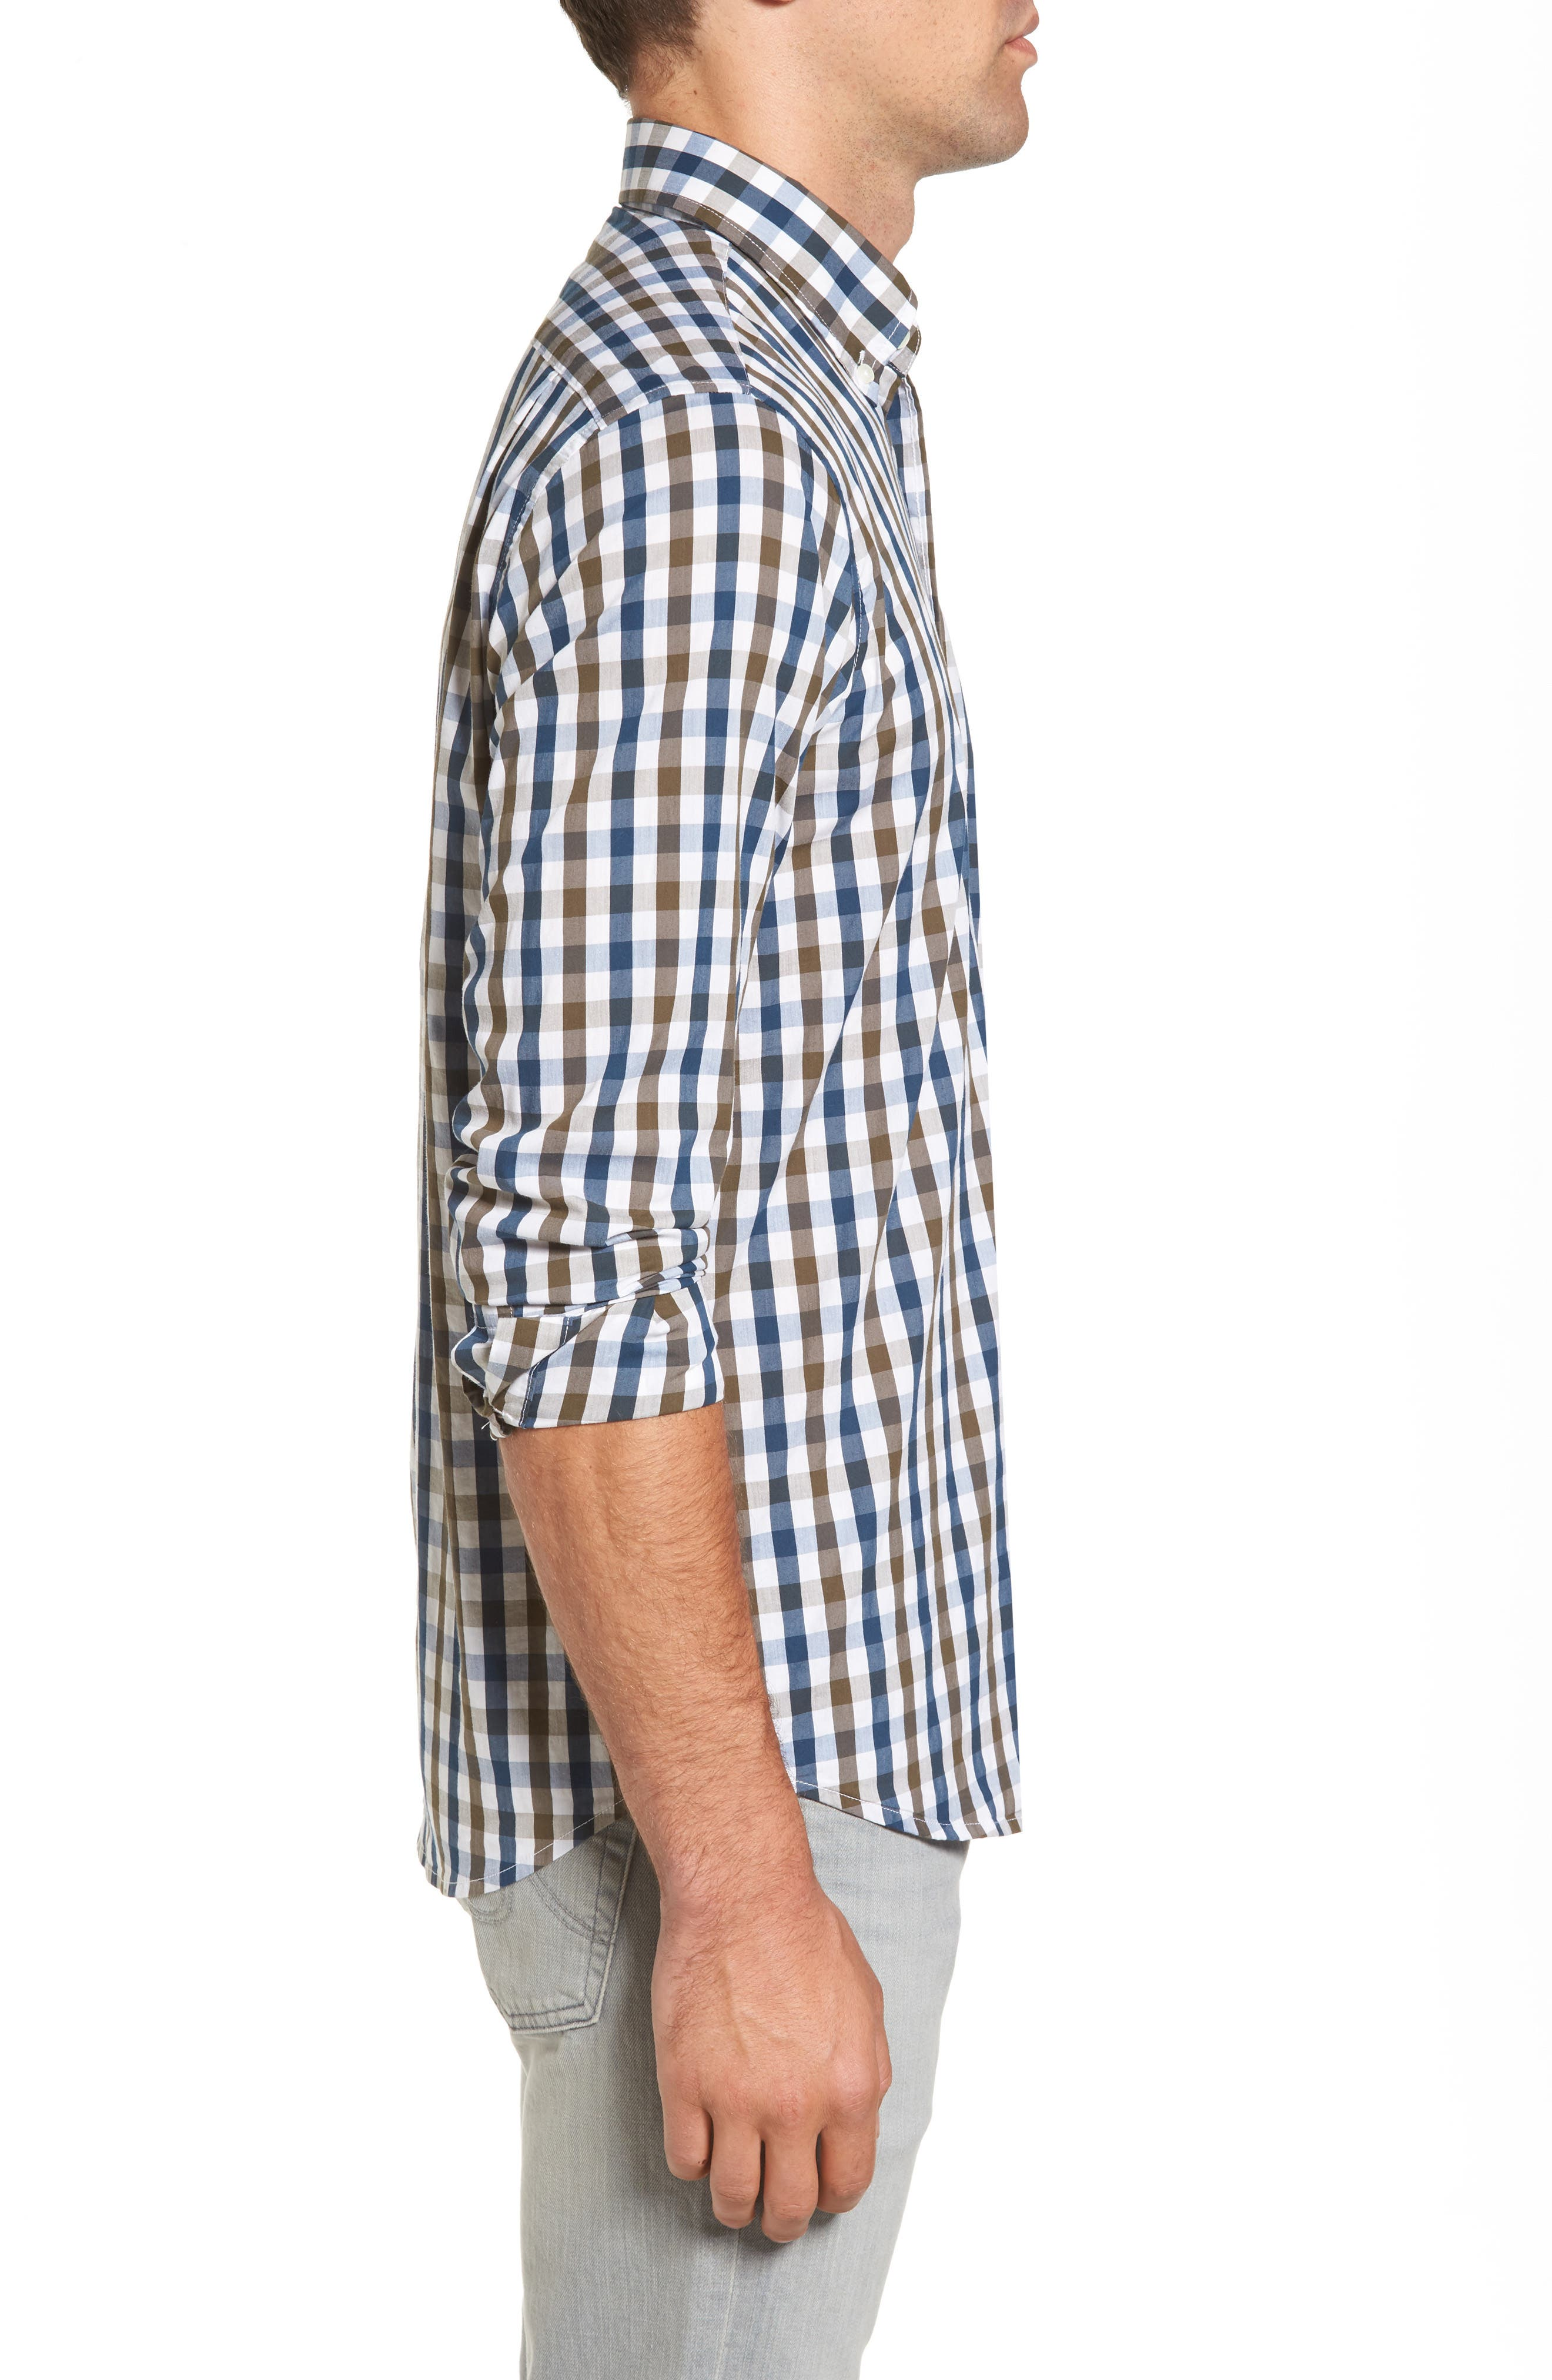 Regular Fit Performance Sport Shirt,                             Alternate thumbnail 3, color,                             Teal/ Army Tricolor Gingham